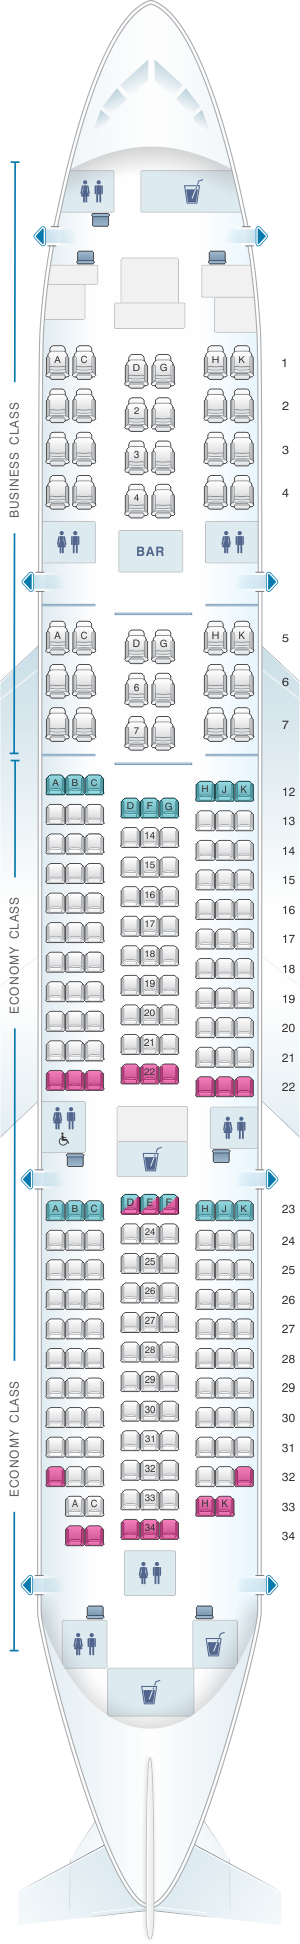 Seat map for ANA - All Nippon Airways Boeing B787-8 240PAX